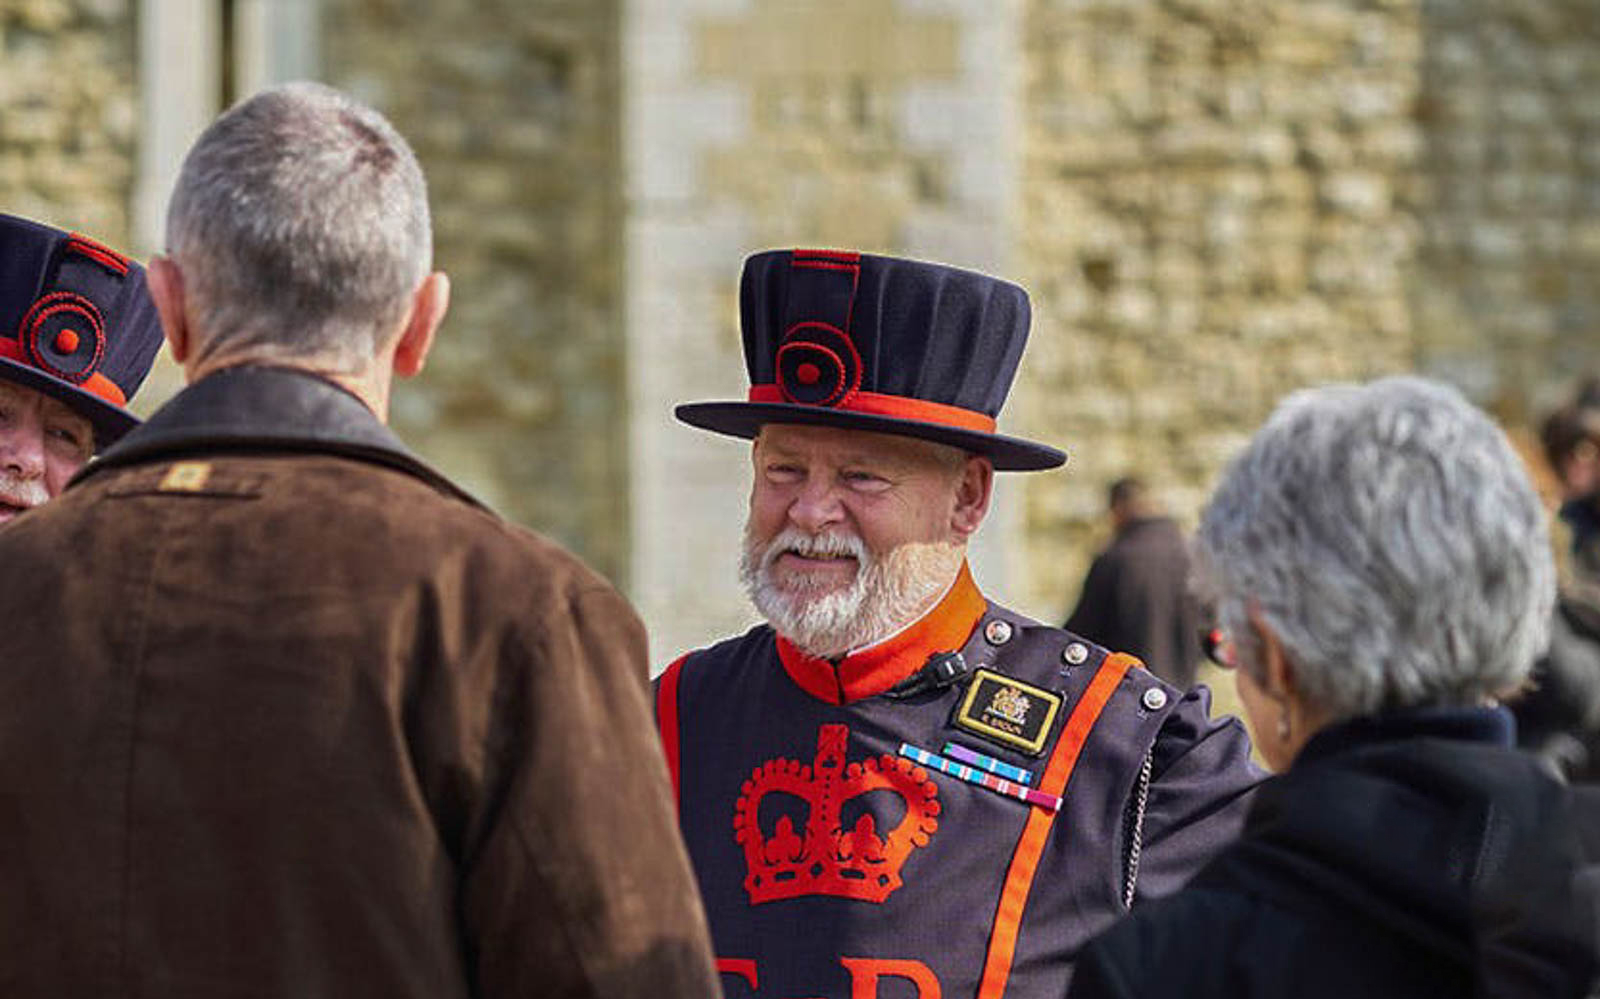 19d51c3c 1385 40ff b68b 6b37ffc92dec 3291 london tower of london tickets with crown jewels   beefeater tour 01